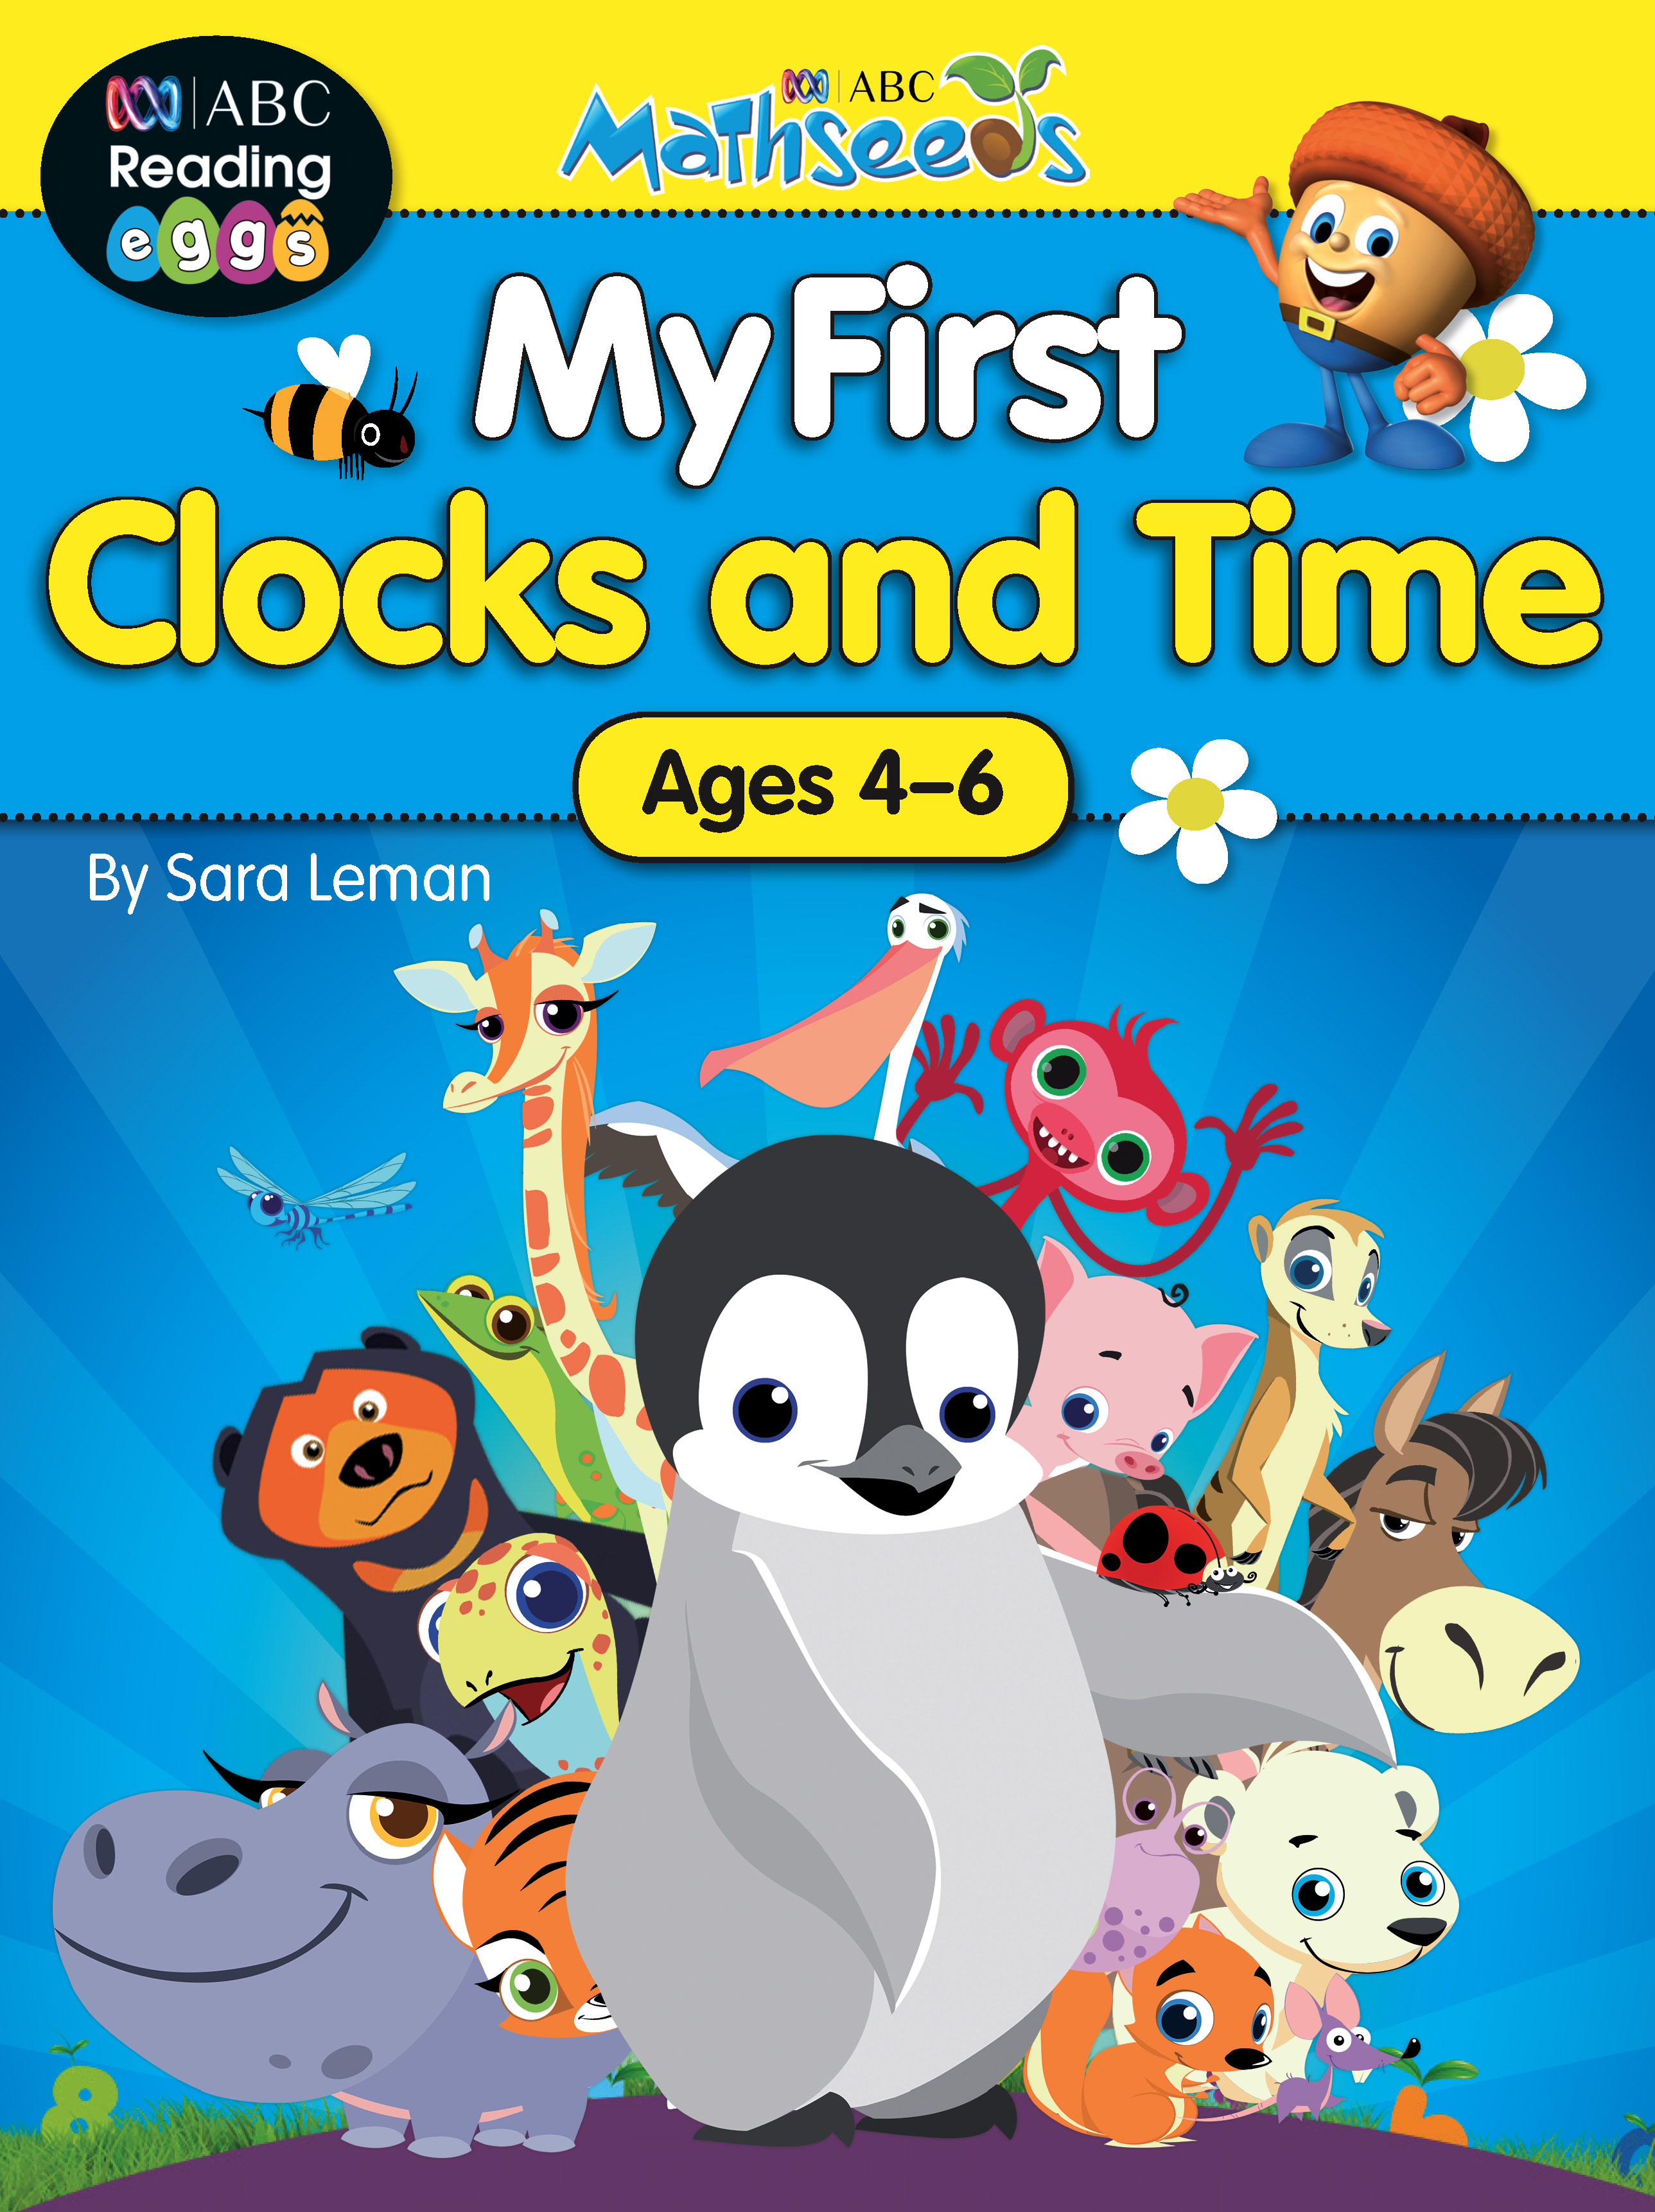 ABC Mathseeds My First Clocks and Time Activity Book